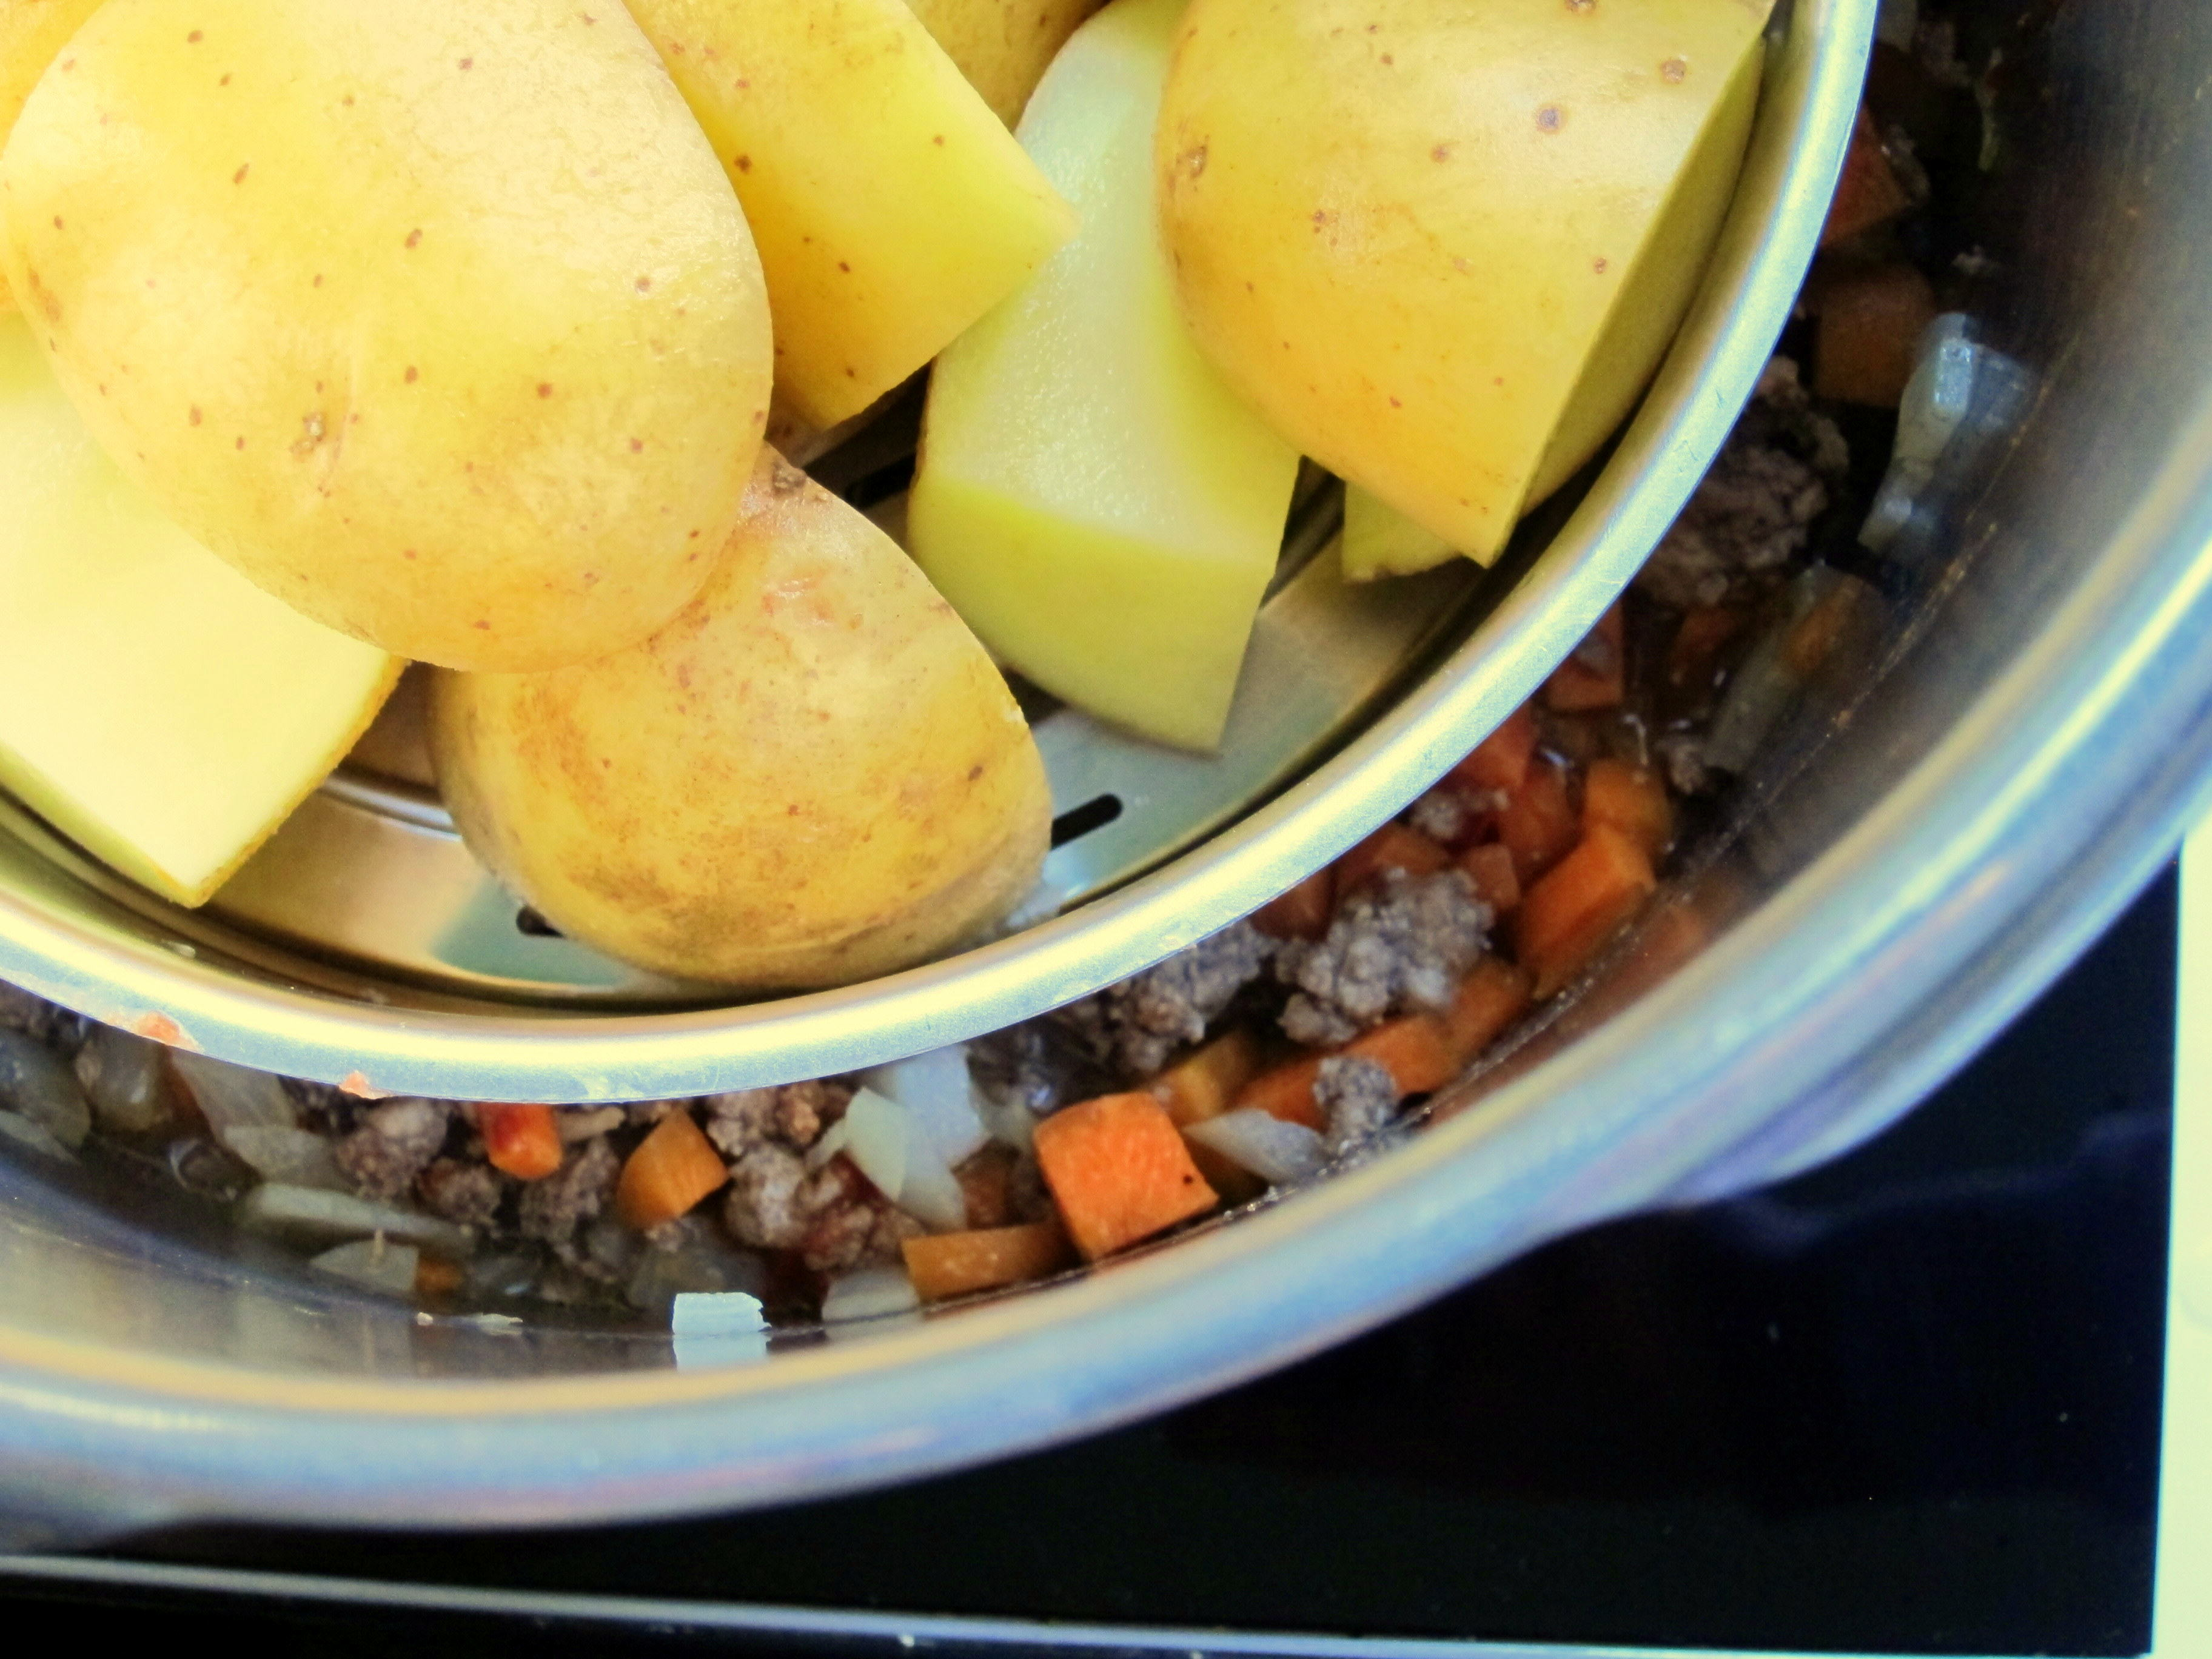 The potatoes steam above the meat mixture and cook at the same time!